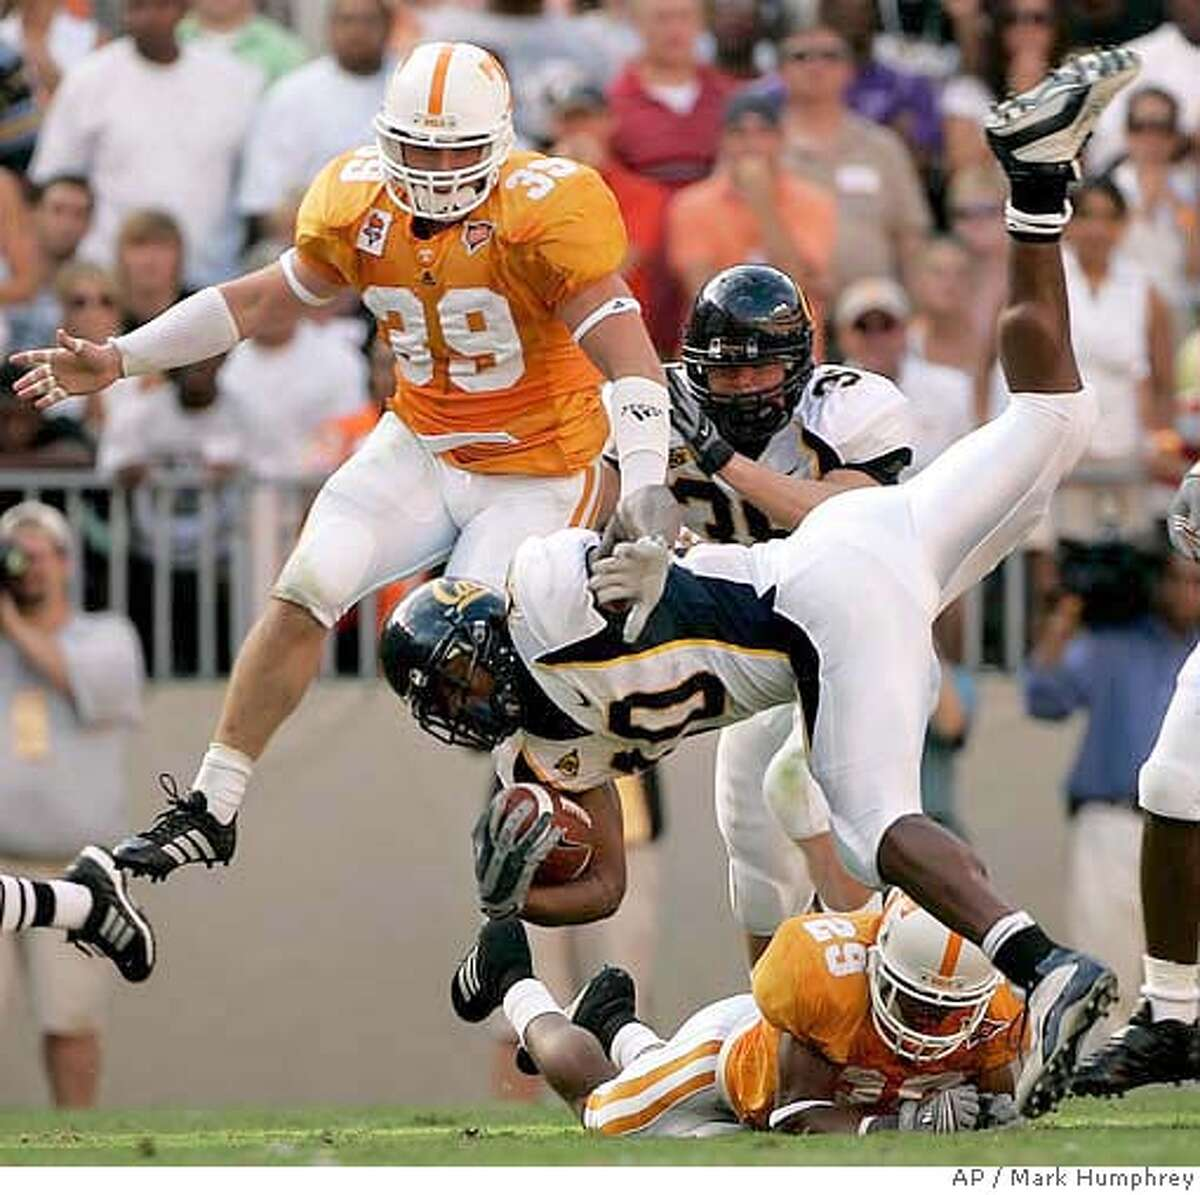 California tailback Marshawn Lynch (10) is tripped-up by Tennessee's Inquoris Johnson (29) in the first quarter of their college football game on Saturday, Sept. 2, 2006, in Knoxville, Tenn. Also defending for Tennessee is Ryan Karl (39). (AP Photo/Mark Humphrey)